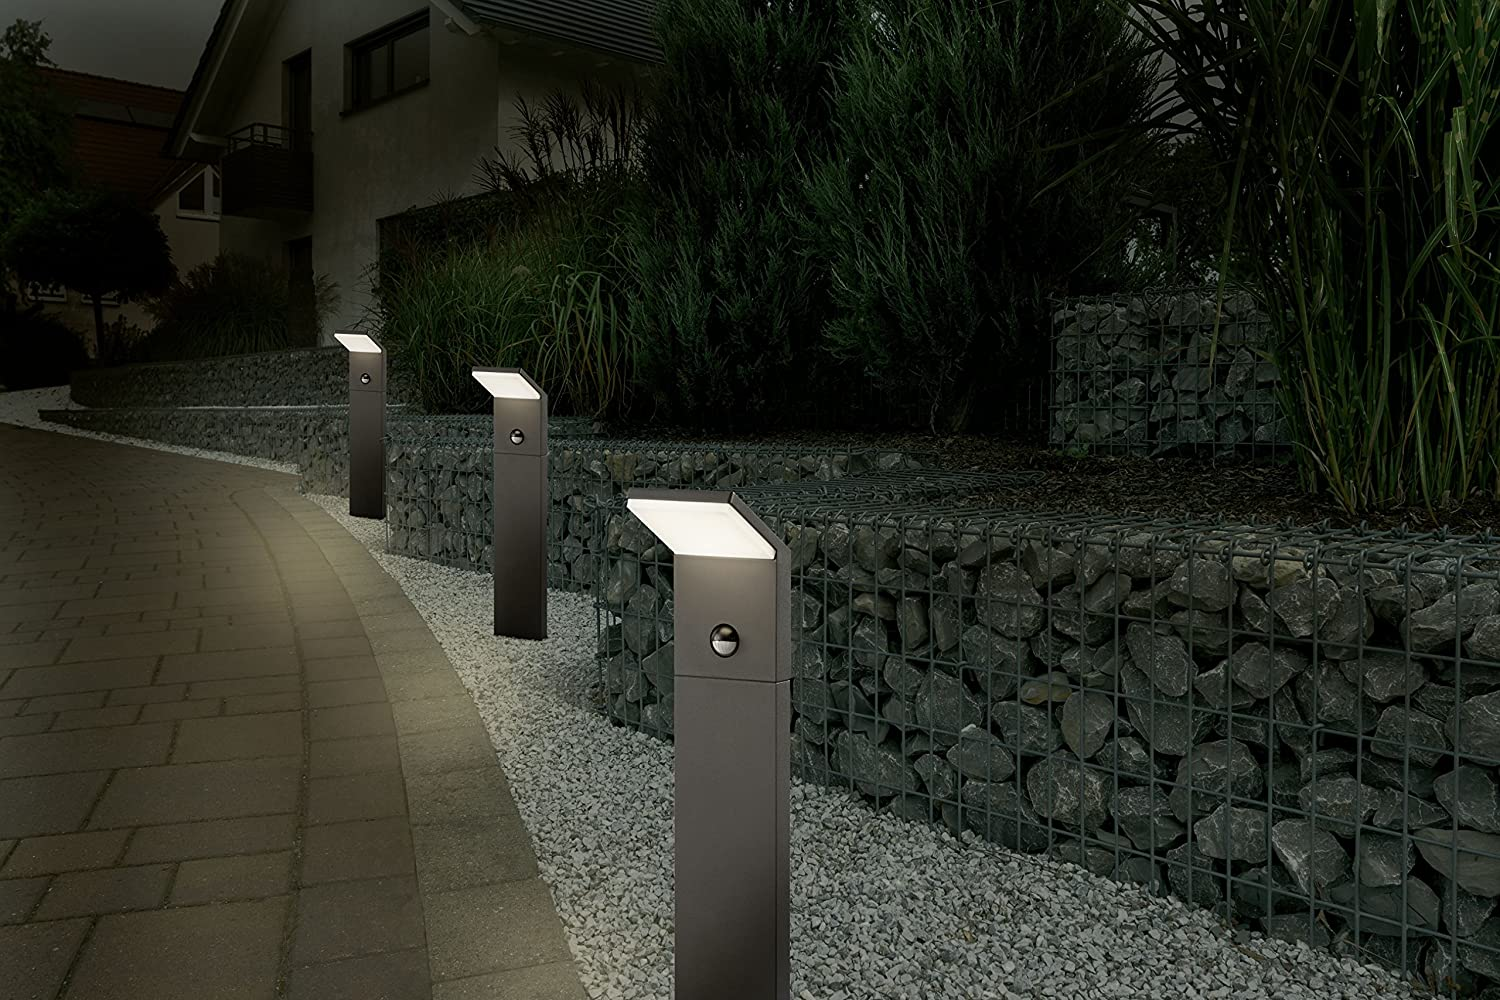 Trio leuchten 521169142 outdoor led pillar light pearl die trio leuchten 521169142 outdoor led pillar light pearl die cast aluminium anthracite amazon lighting parisarafo Gallery